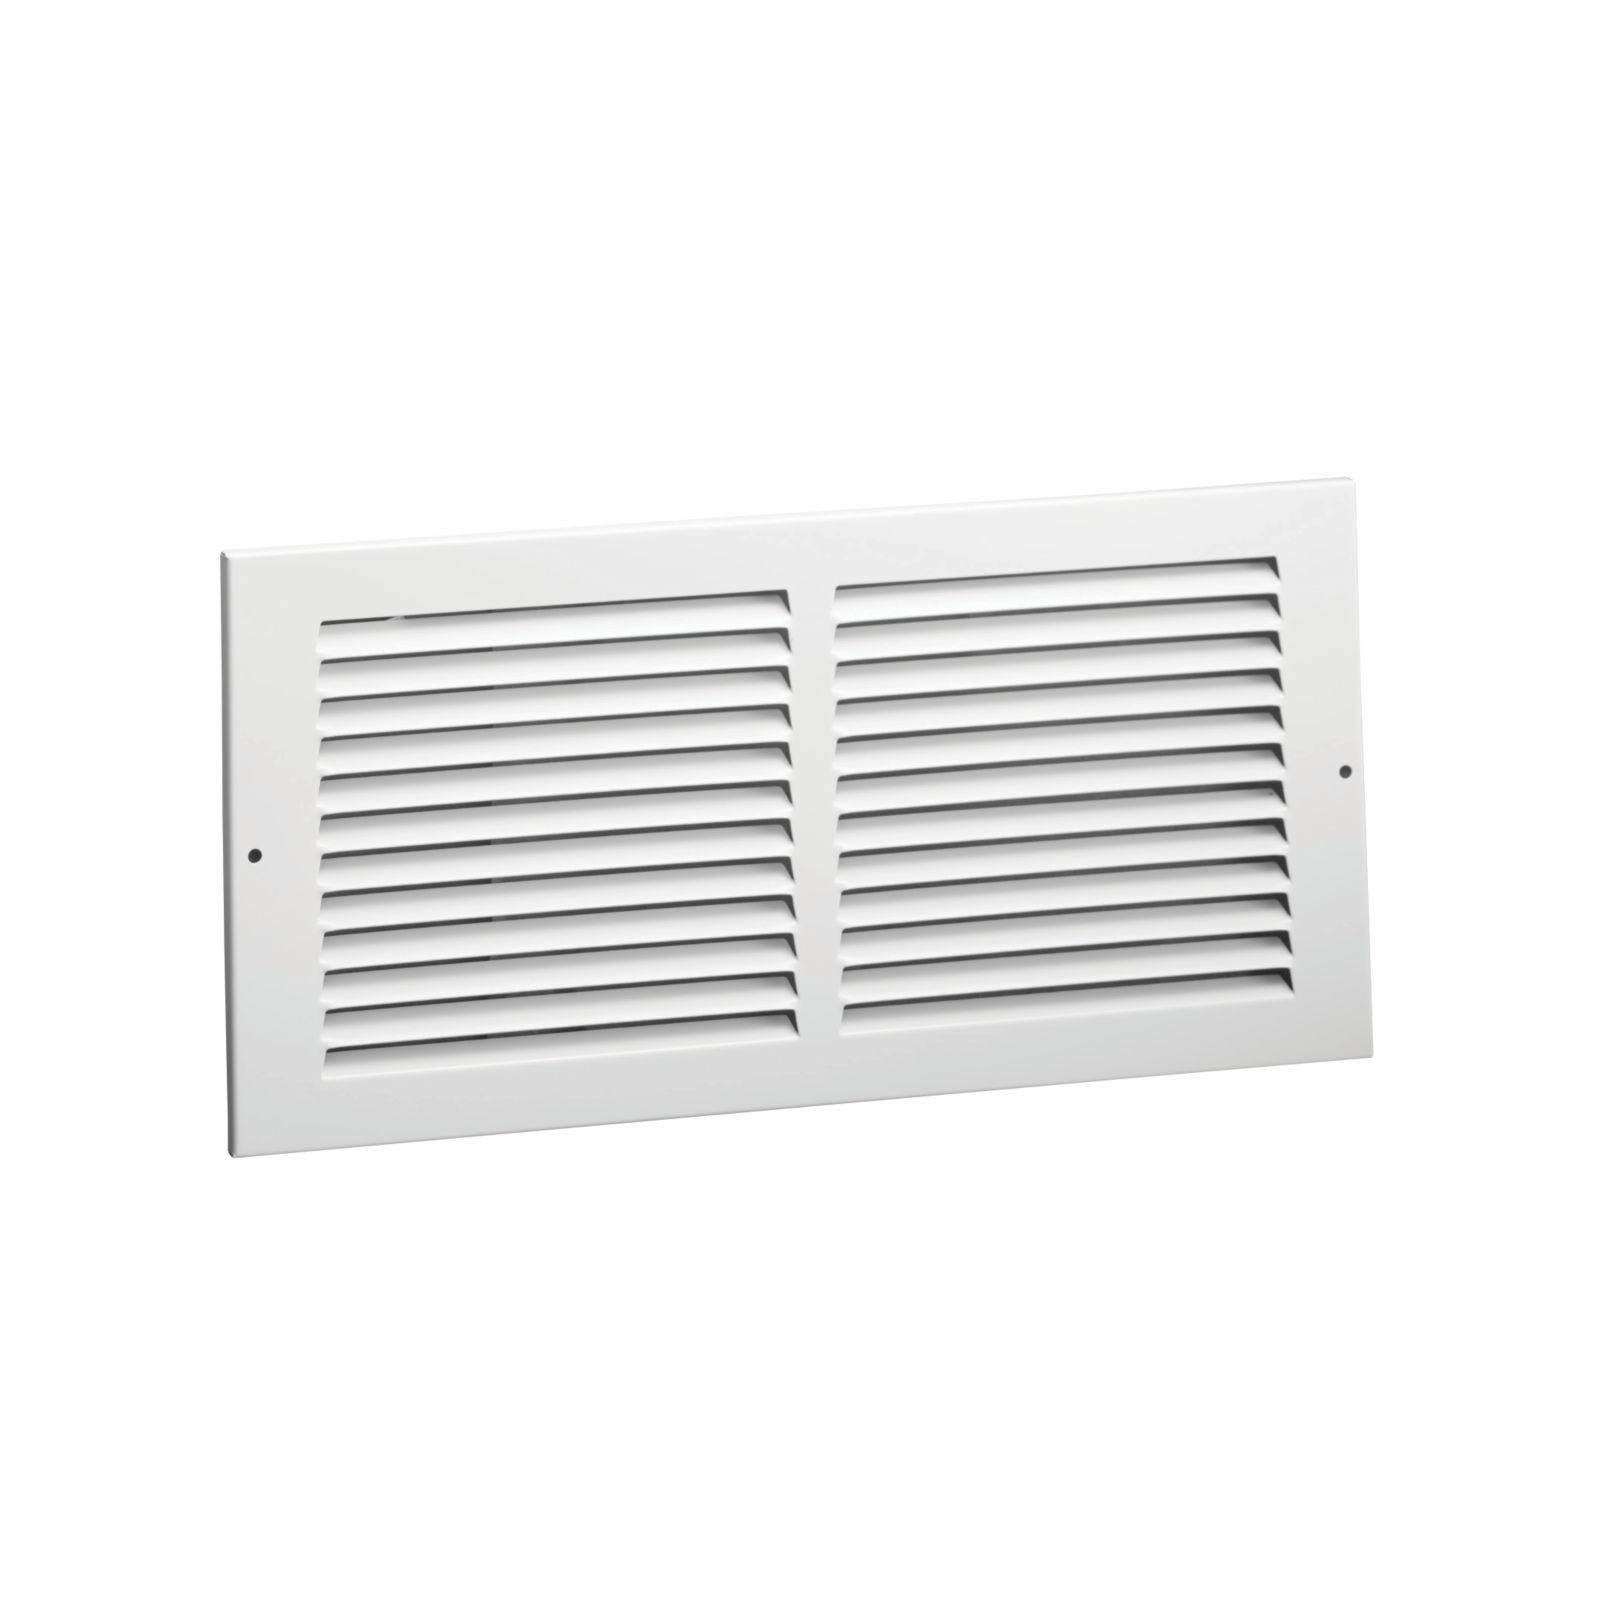 "Hart & Cooley 043373 - #672 Steel Return Air Grille, White Finish, 30"" X 8"""